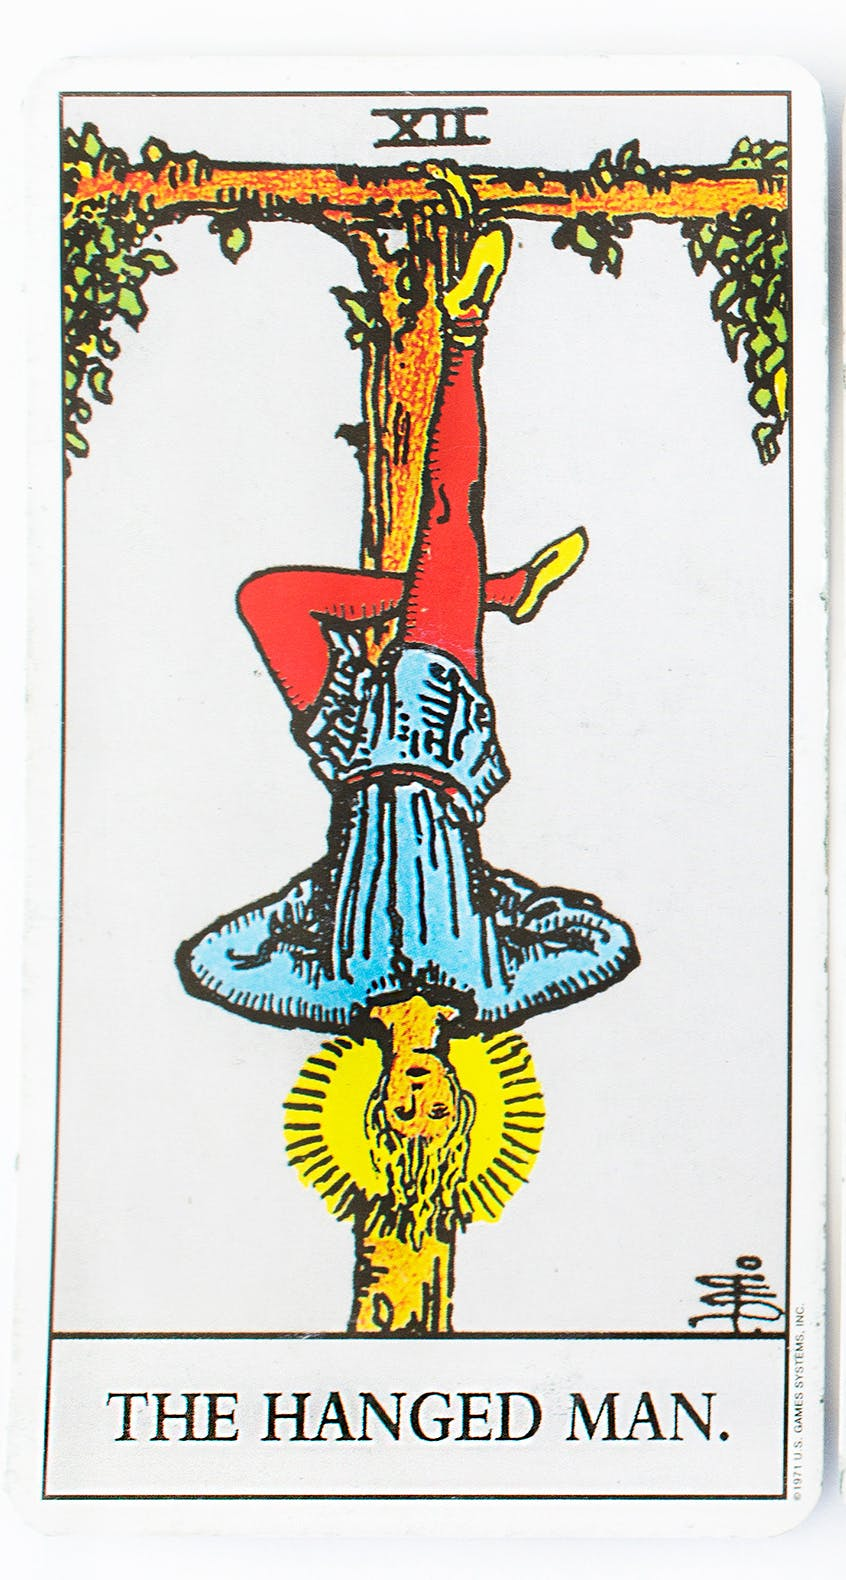 the hanged man from the Rider-Waite tarot deck. image of a man hanging by one ankle upside down on a cross.